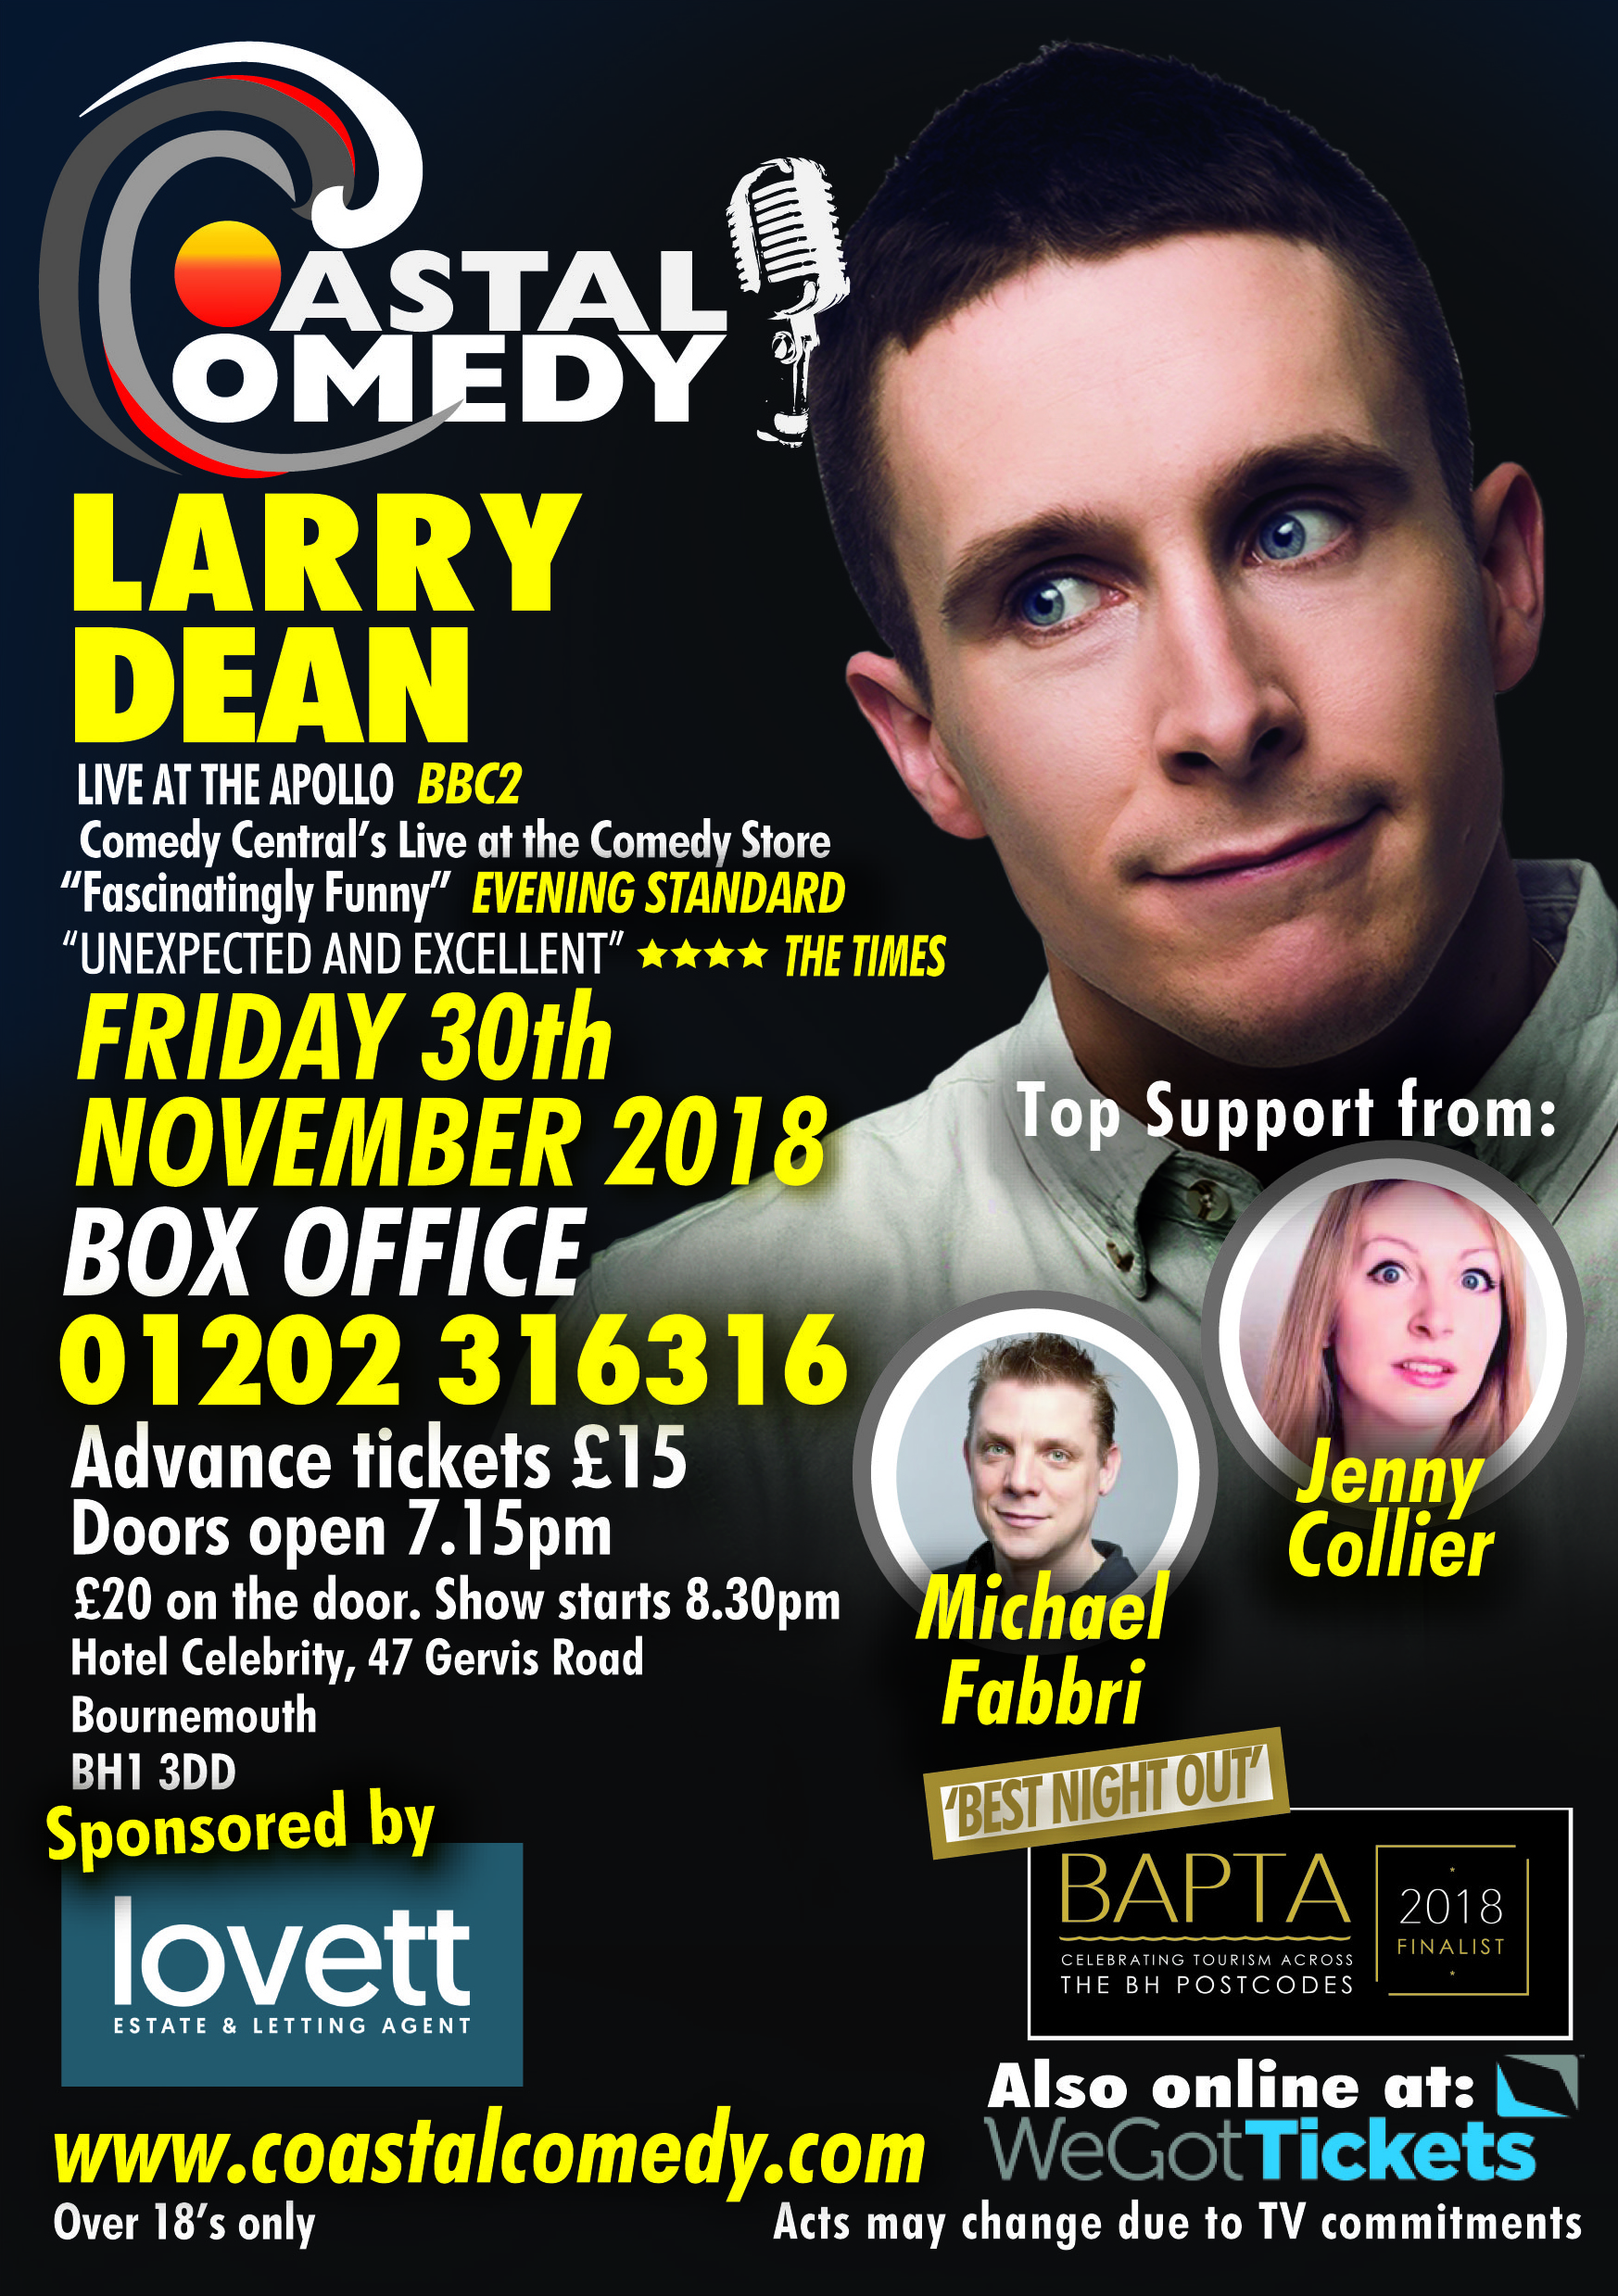 Bournemouth, larry Dean, coastal, dorset, hotel celebrity, comedy, best night out, LOL, pavillion, comic, stand-up, bournemouth, what's on, jokes, funny, lol,comic, comedian,